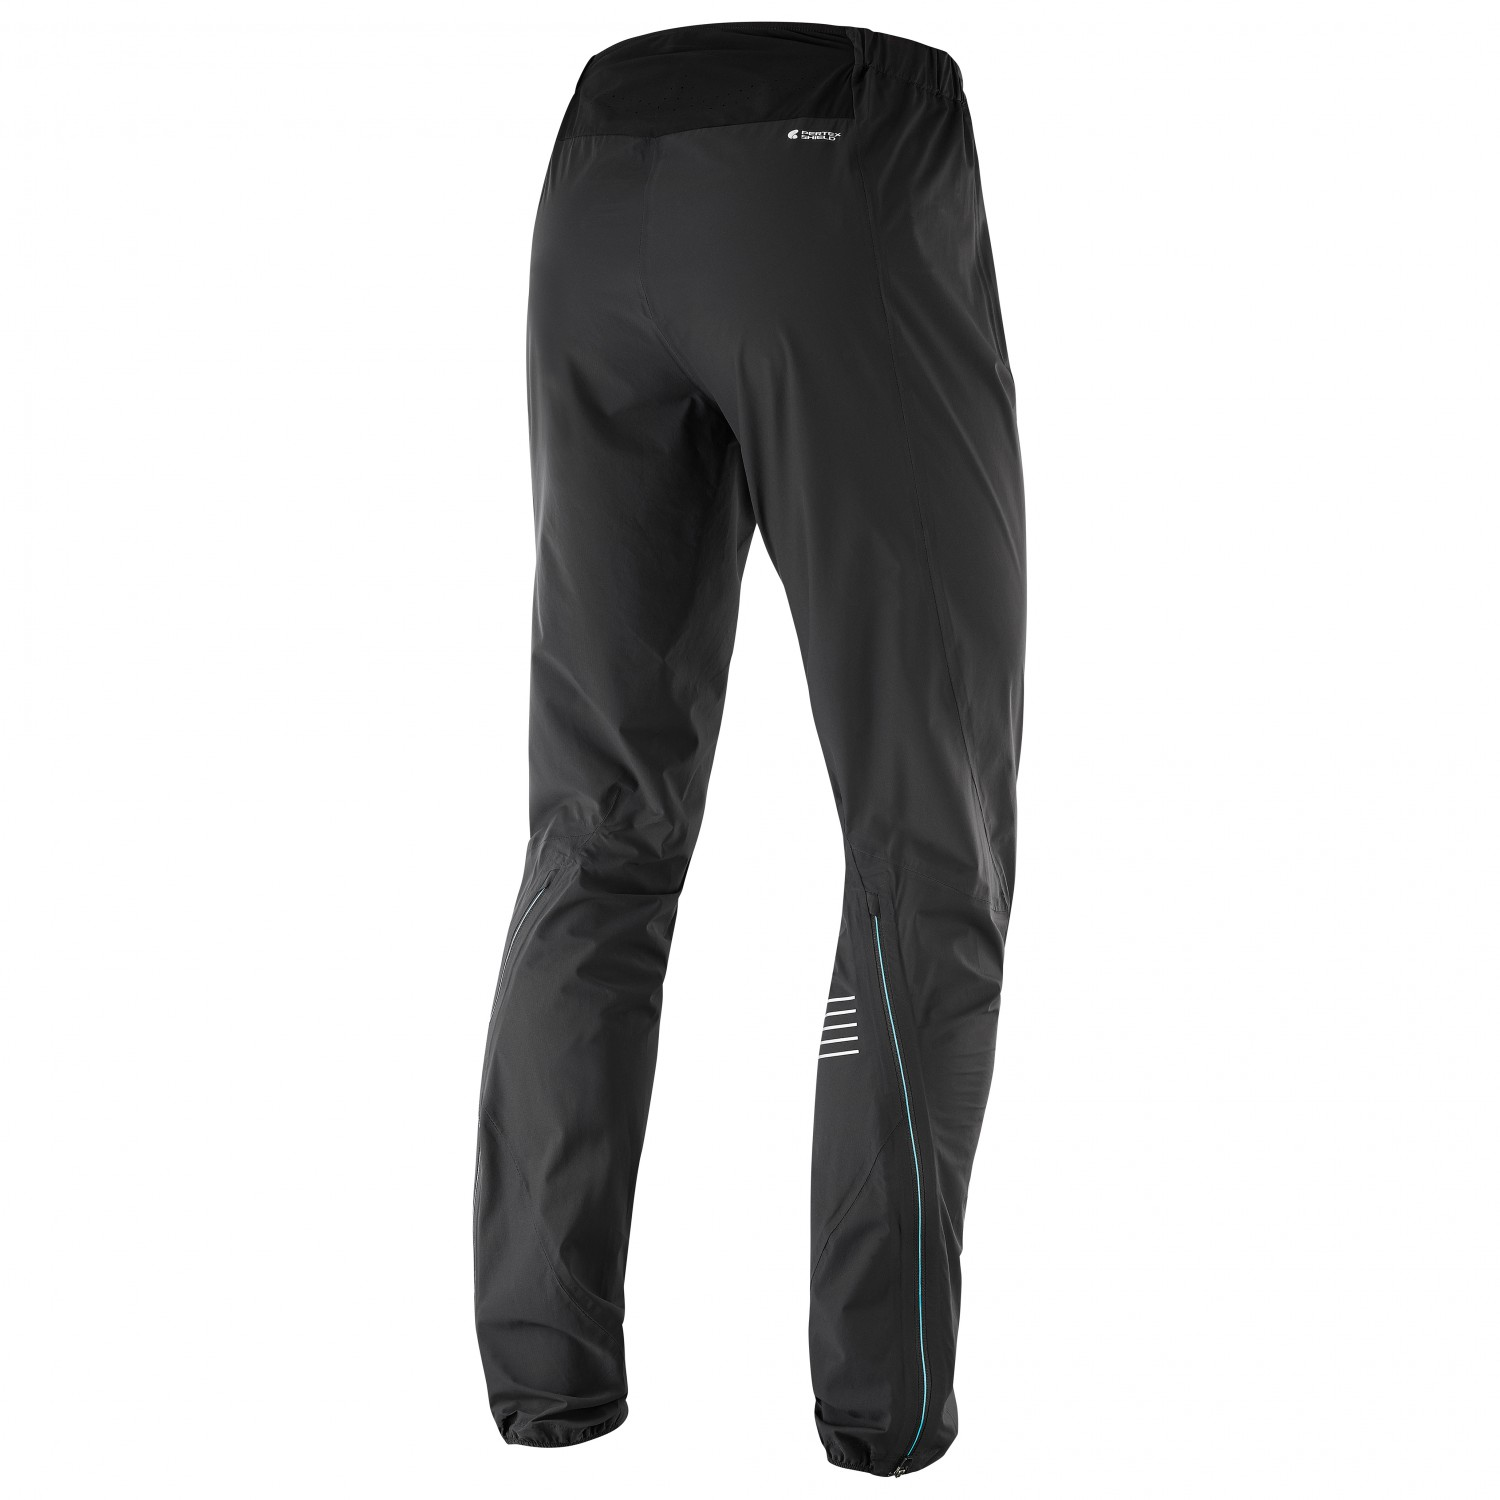 Homme Pant Motion Pantalon Slab De Salomon 360 Fit Running qZW4O